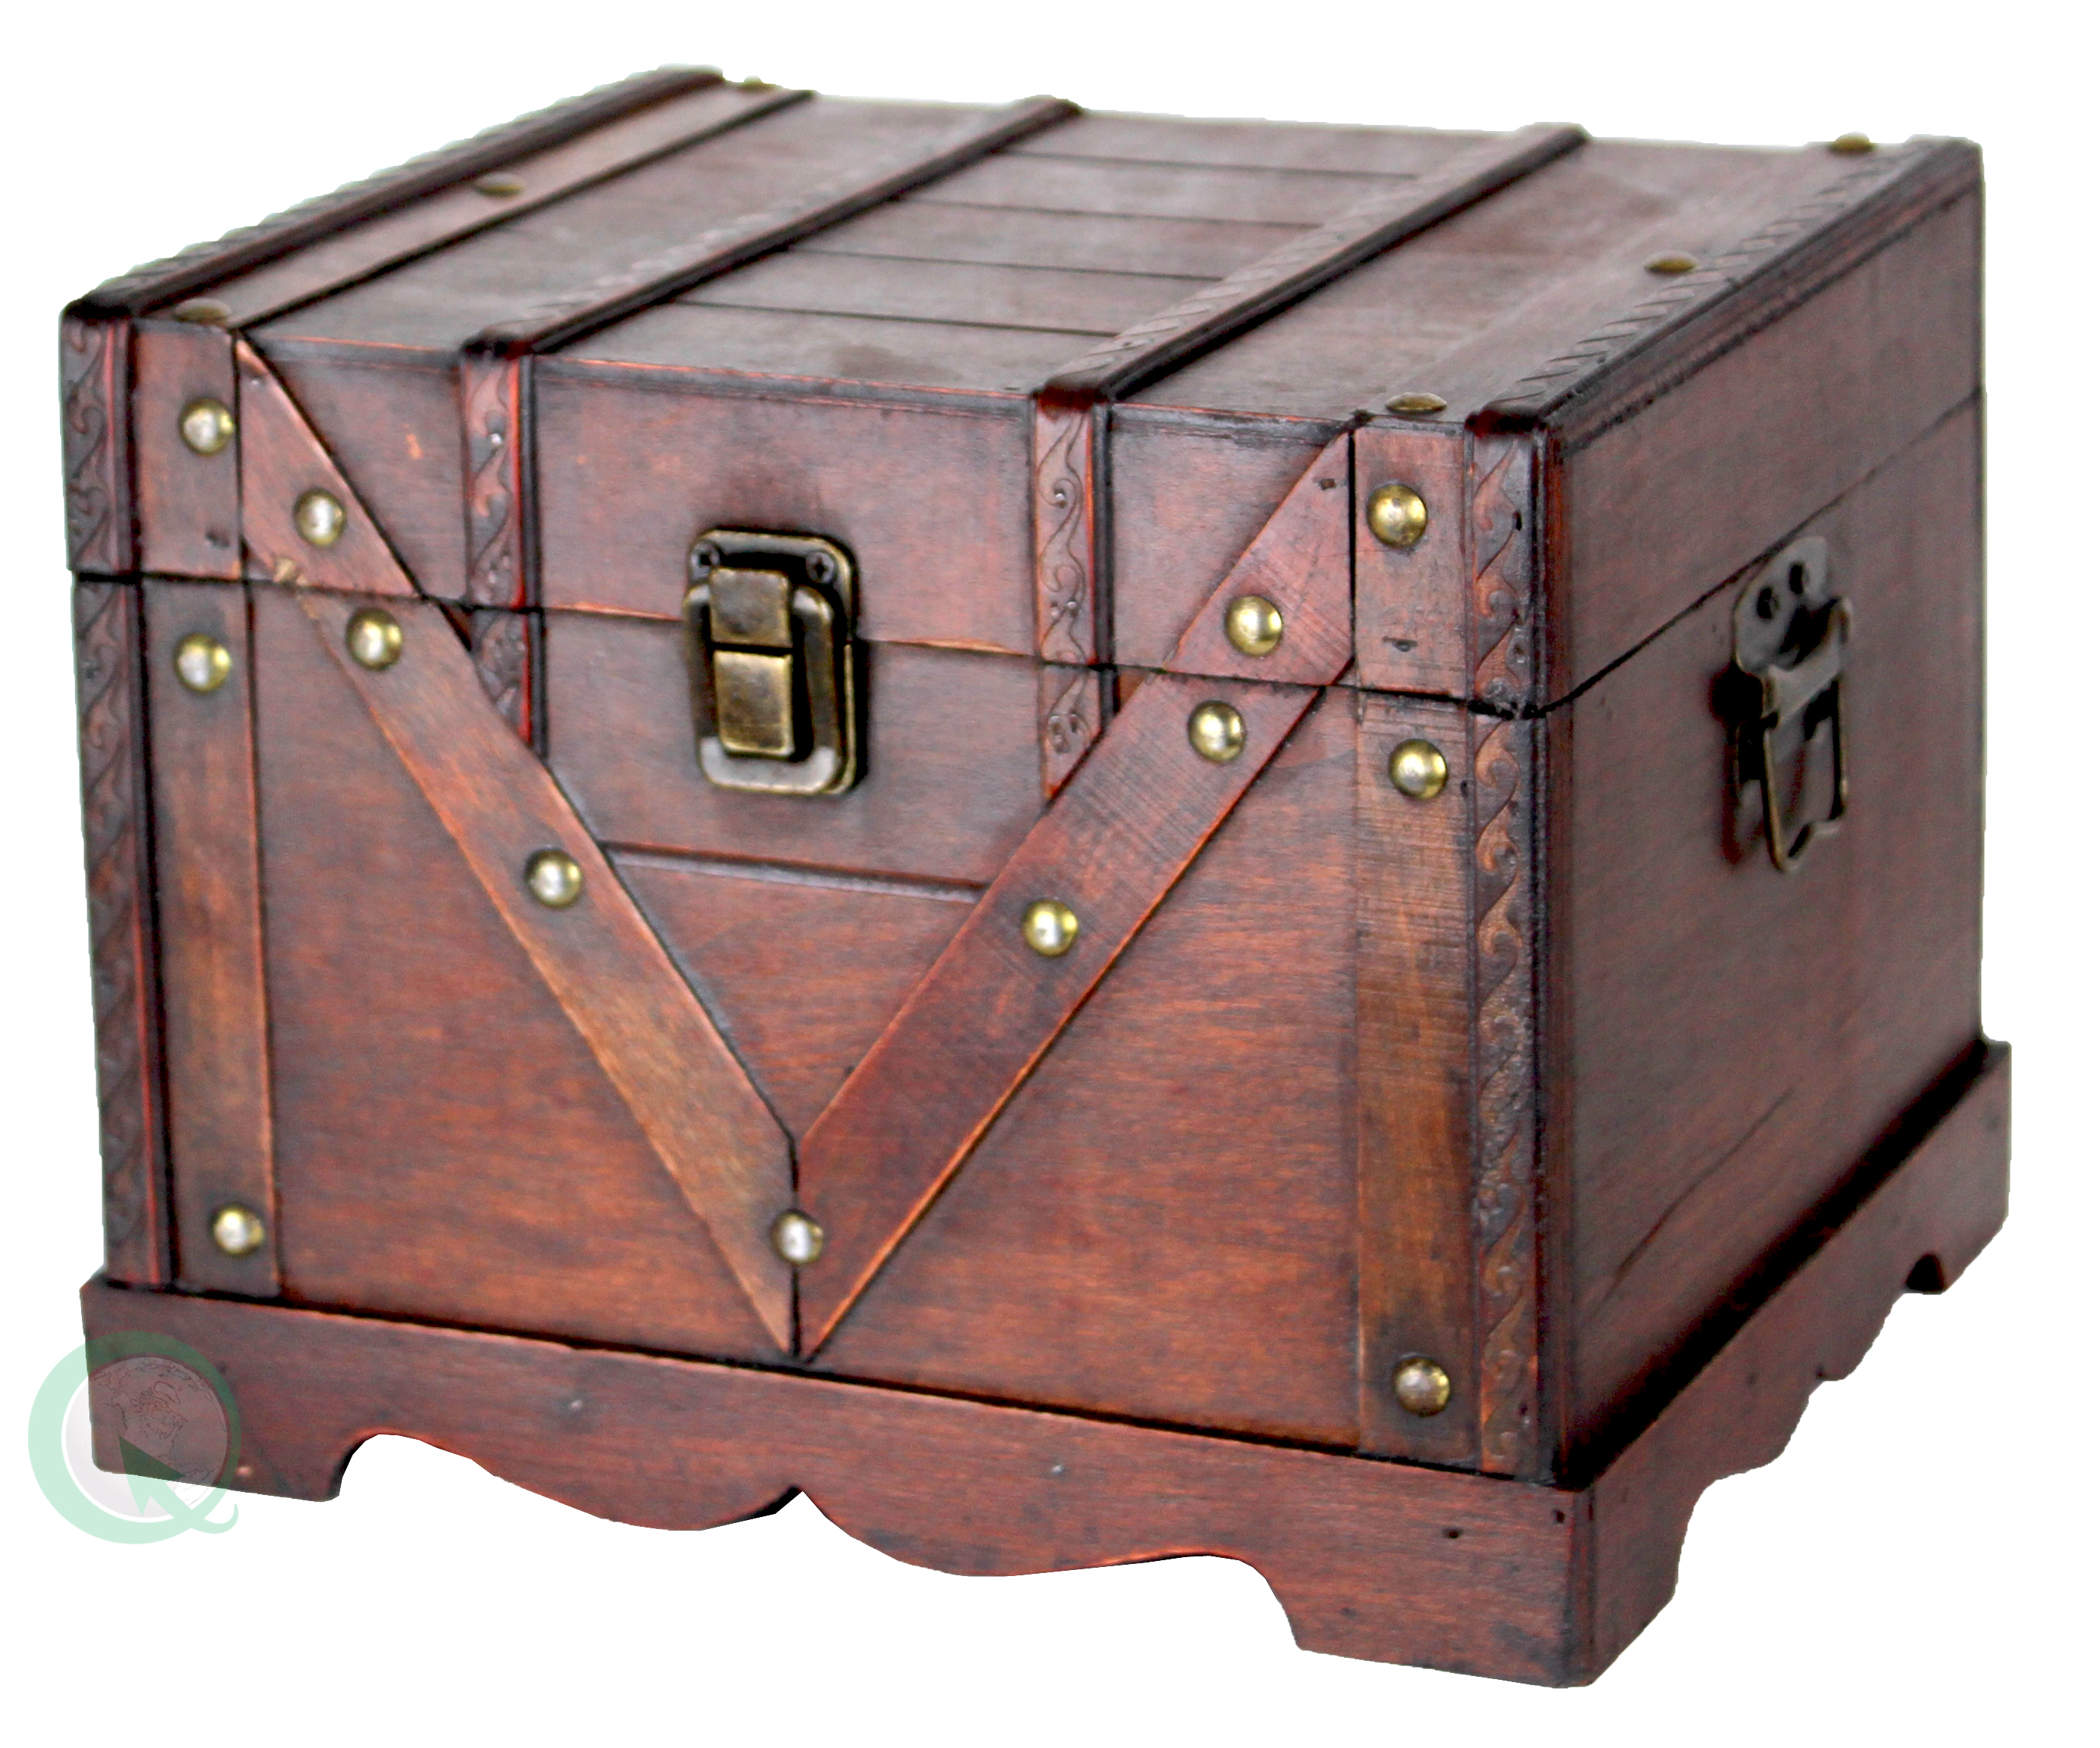 sc 1 st  Walmart & Small Wooden Treasure Box Old Style Treasure Chest - Walmart.com